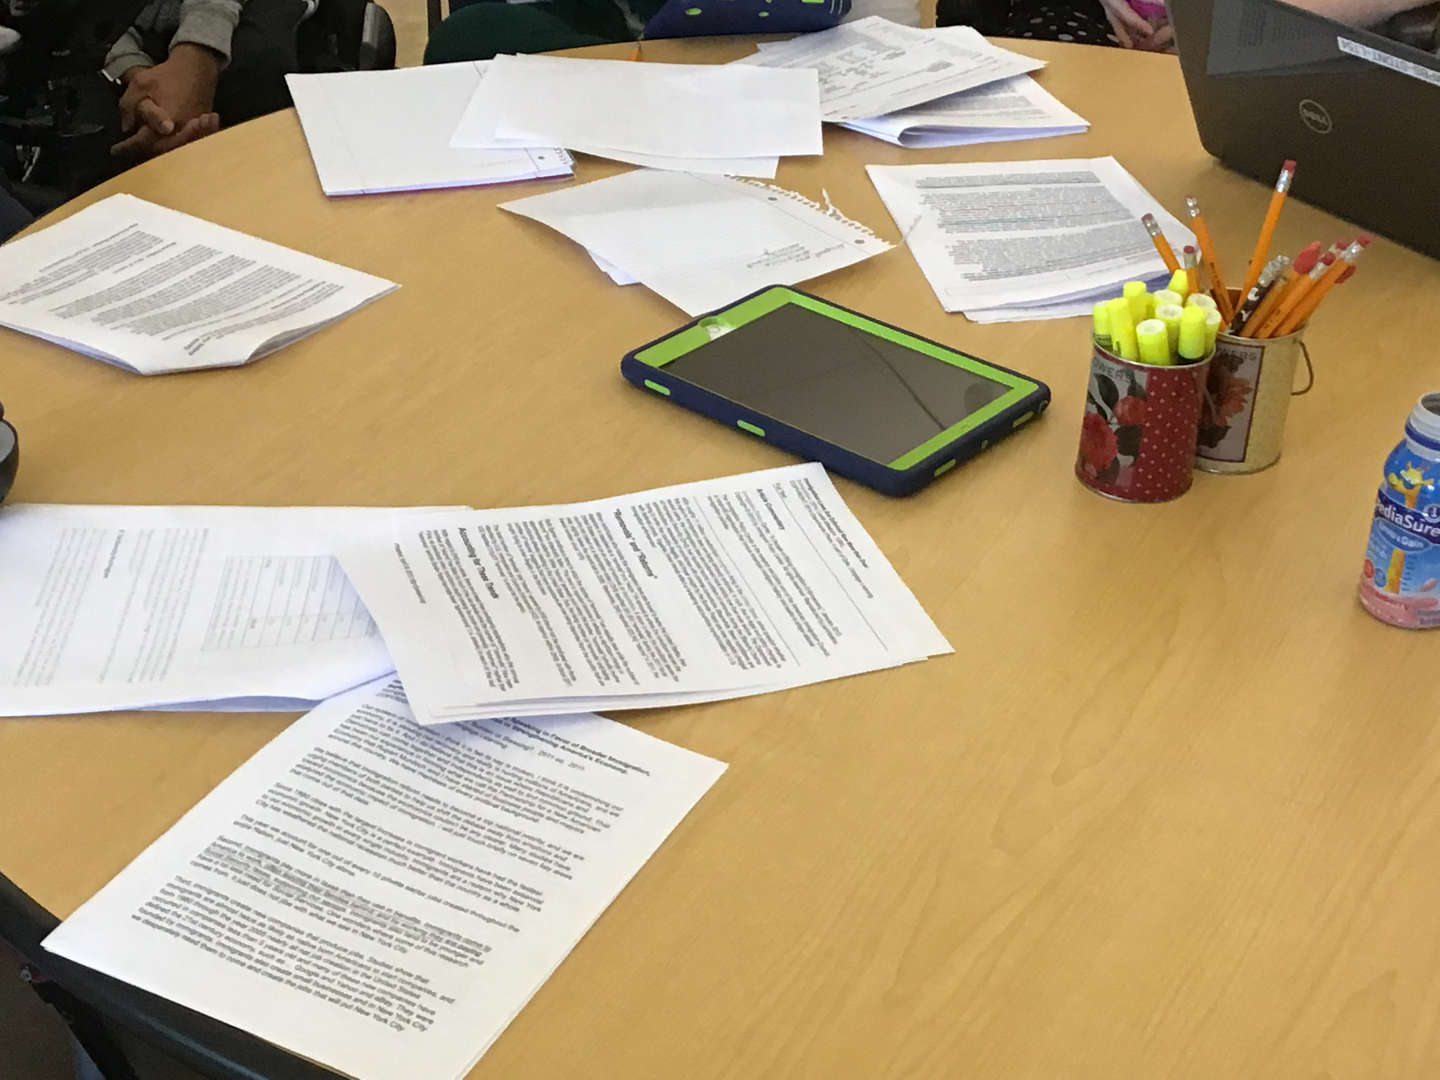 Written resources, highlighters and an iPad on a table.